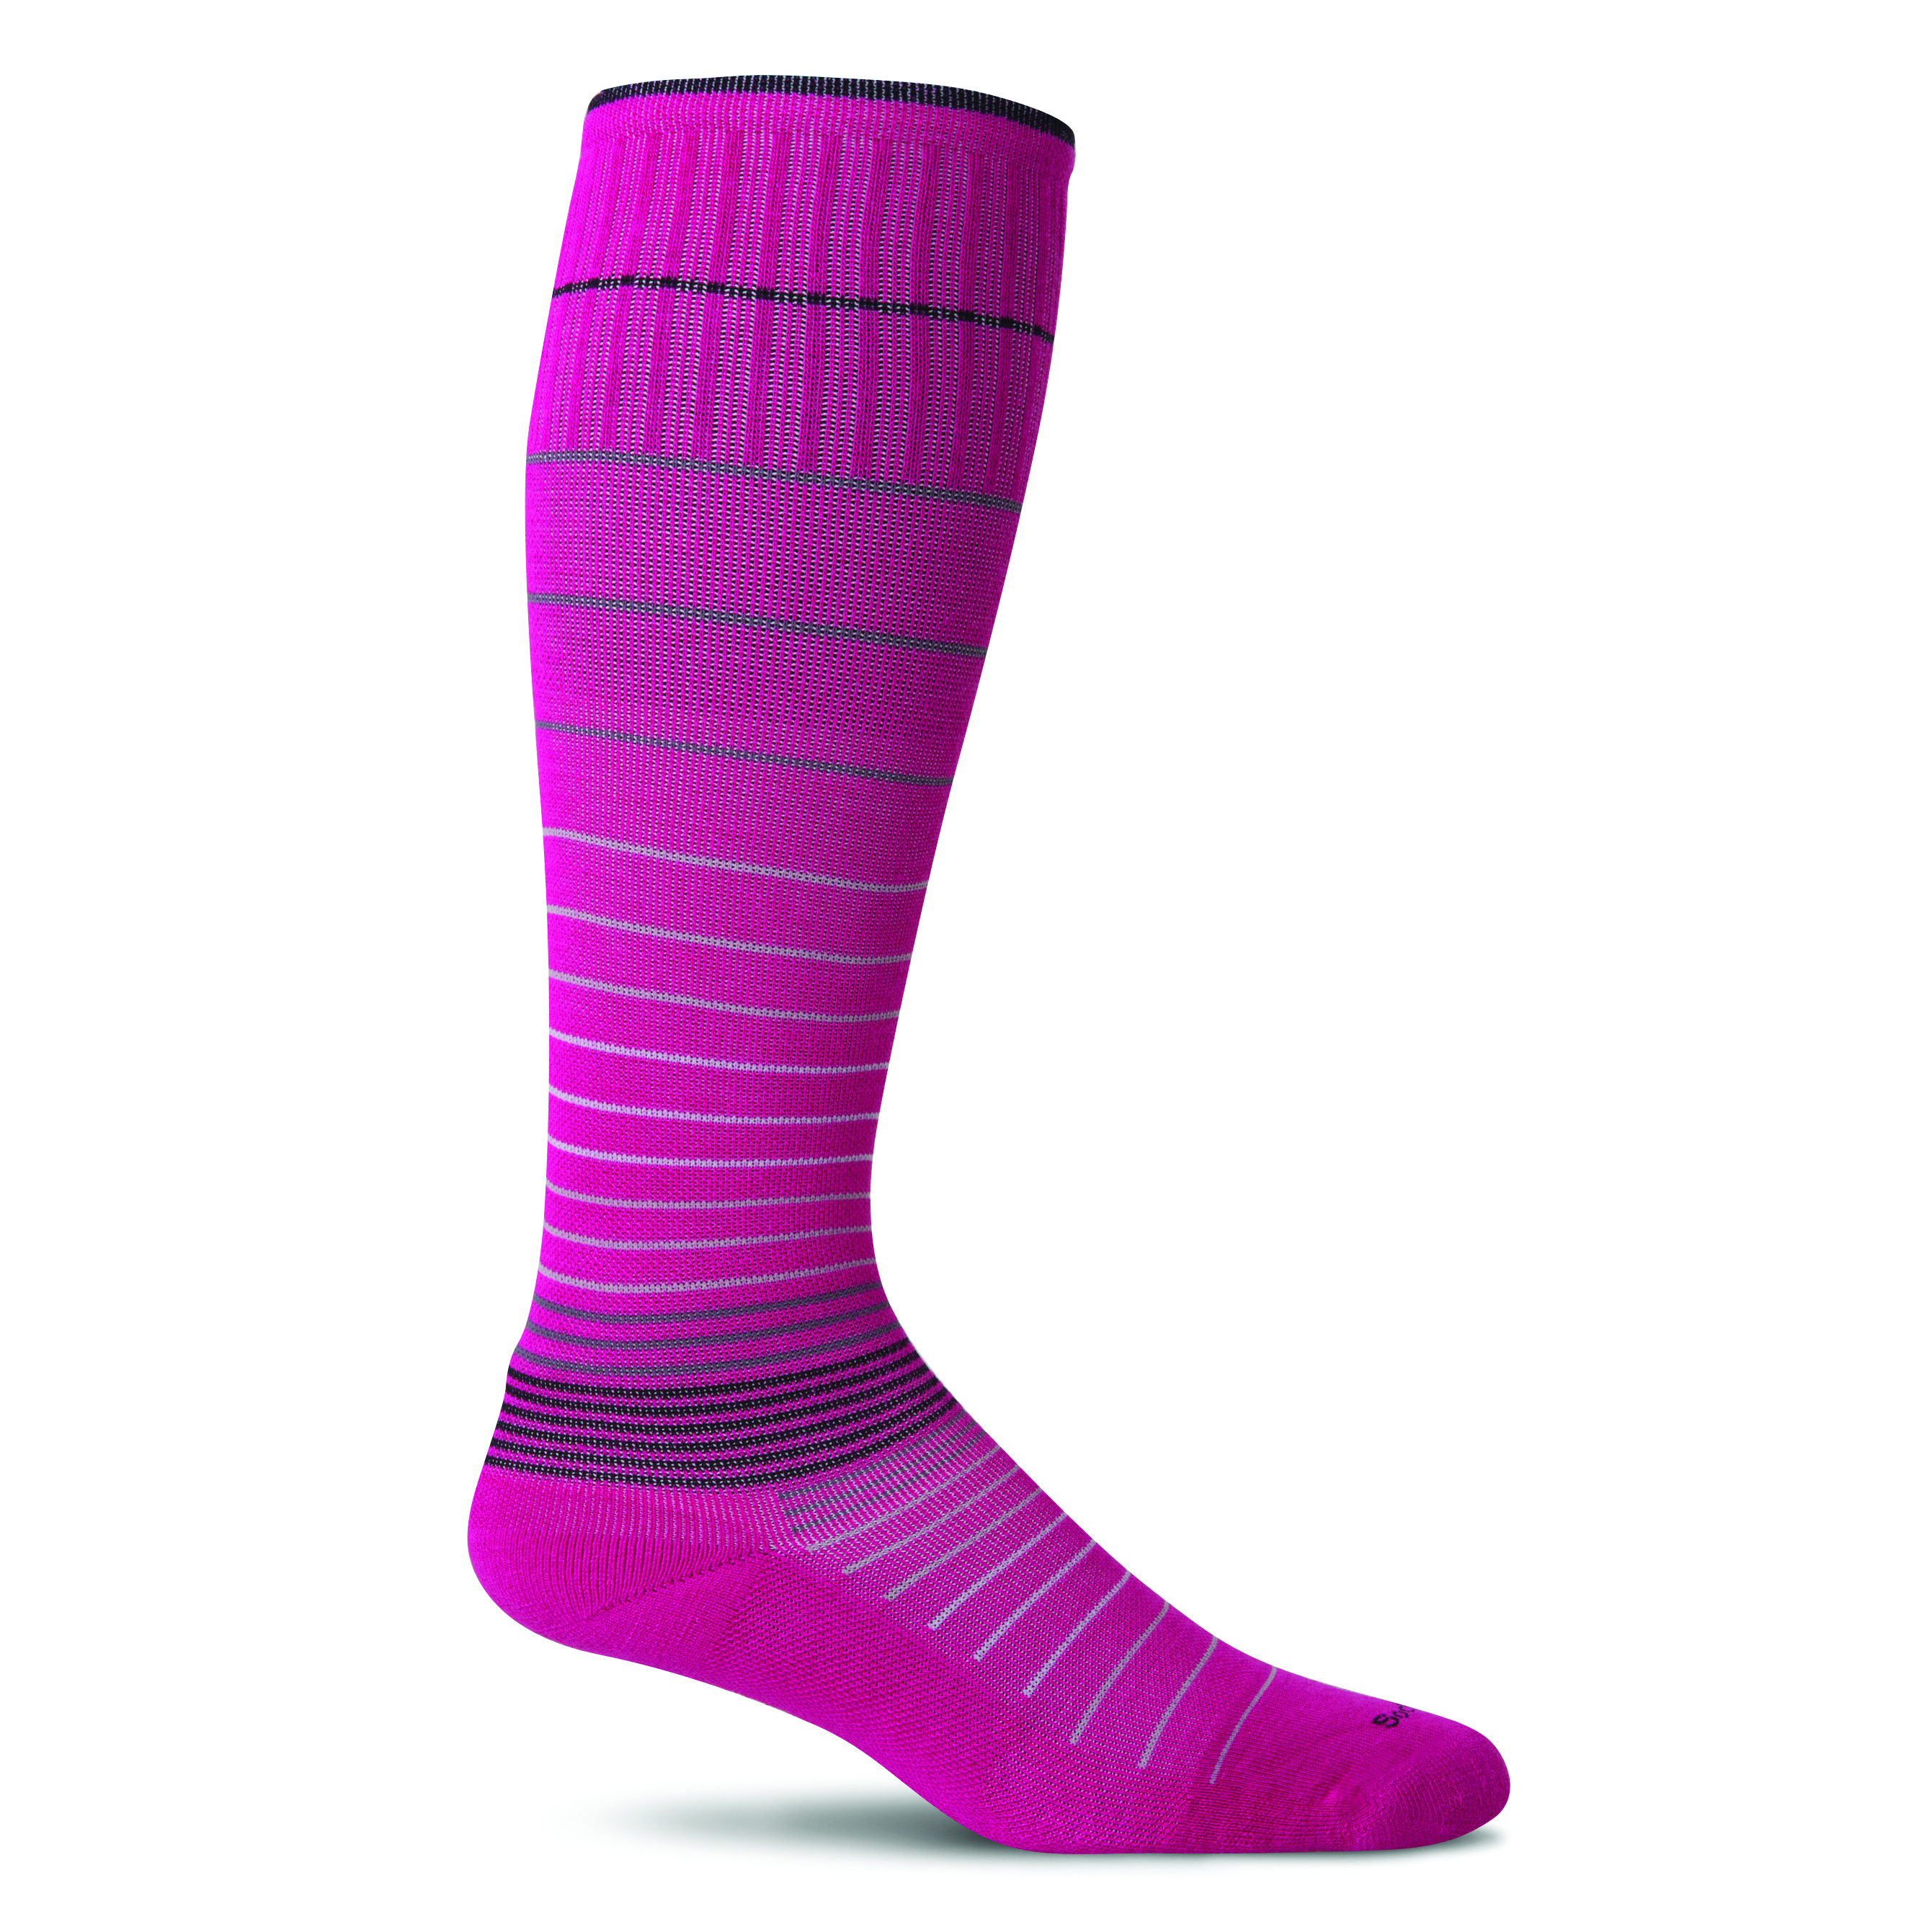 Sockwell Circulator SW1W Moderate 15-20 mmHg Women's Knee High Compression Socks-Sockwell